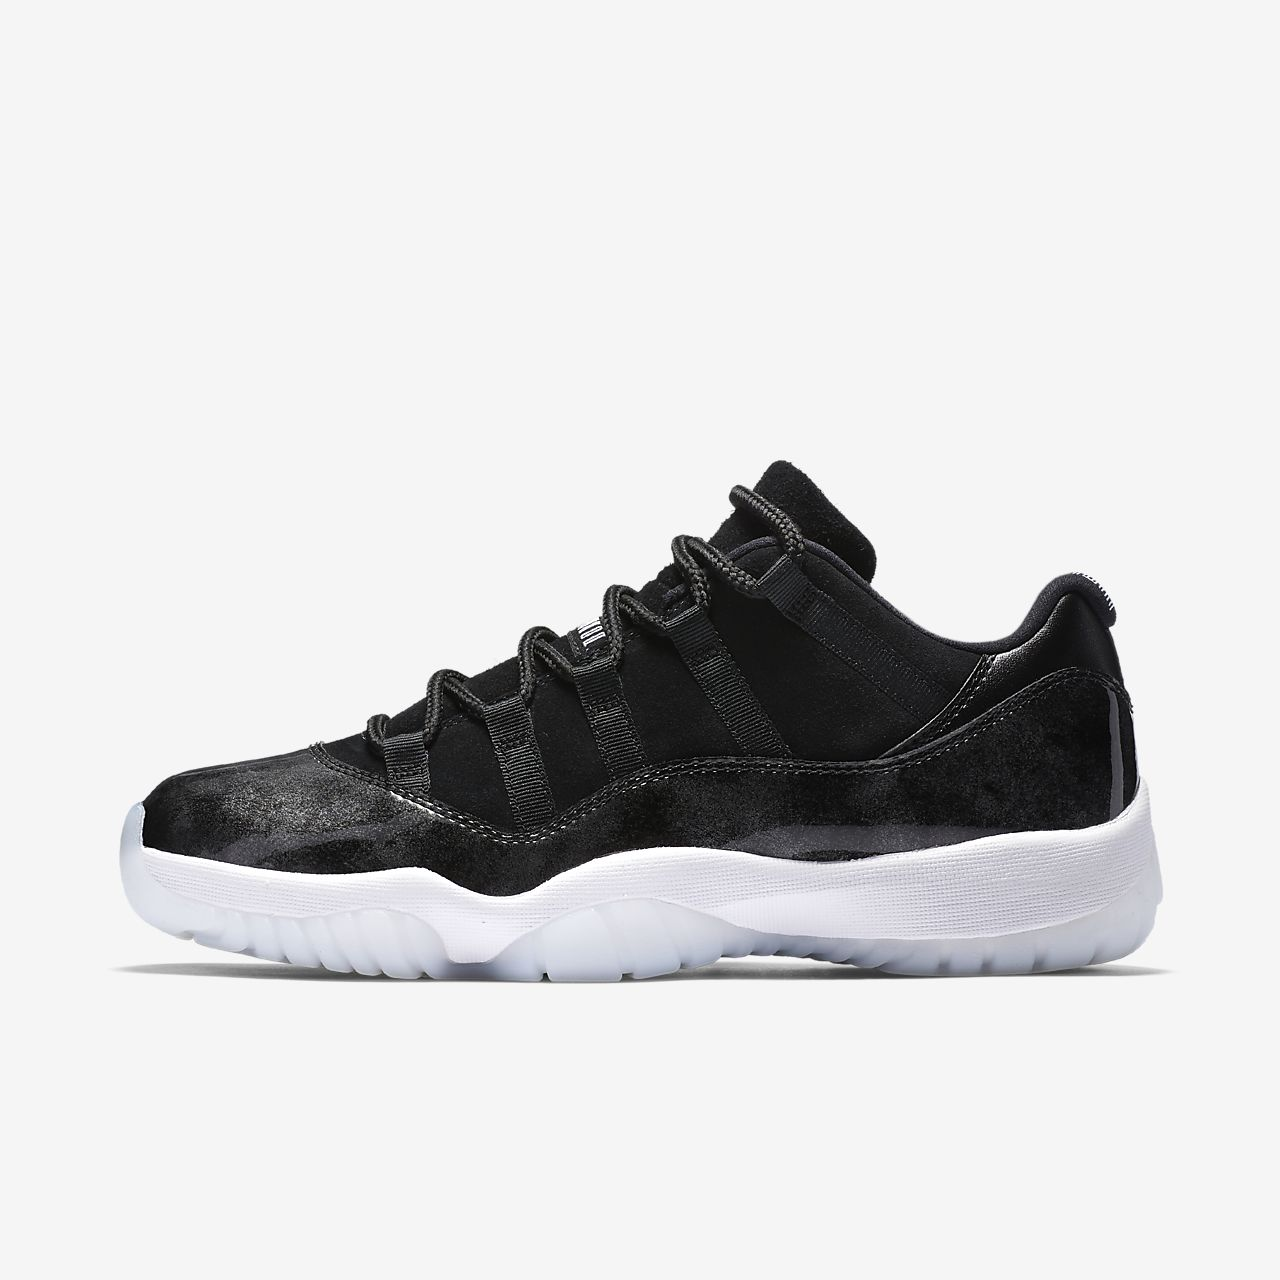 0b98ba67178285 Air Jordan 11 Retro Low Men s Shoe. Nike.com ID